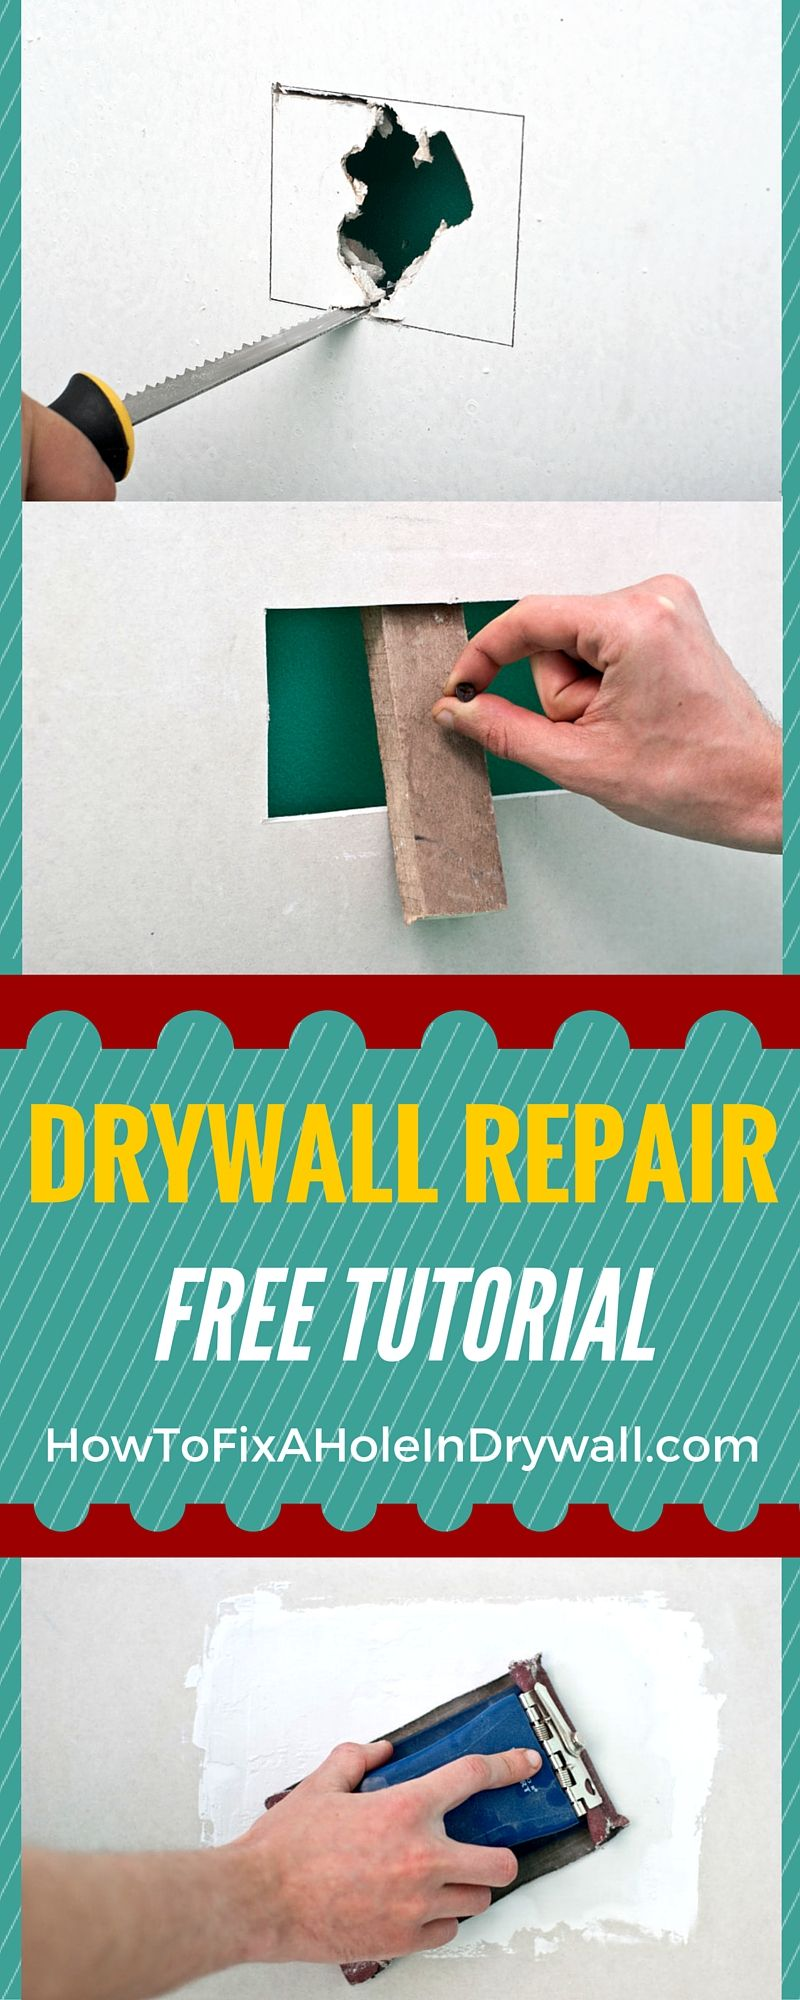 How To Fix A Hole In Drywall Easy To Follow Instructions And Tips For You To Repair Drywall Holes As A Pro Repair Drywall Hole Drywall Repair Diy Home Repair